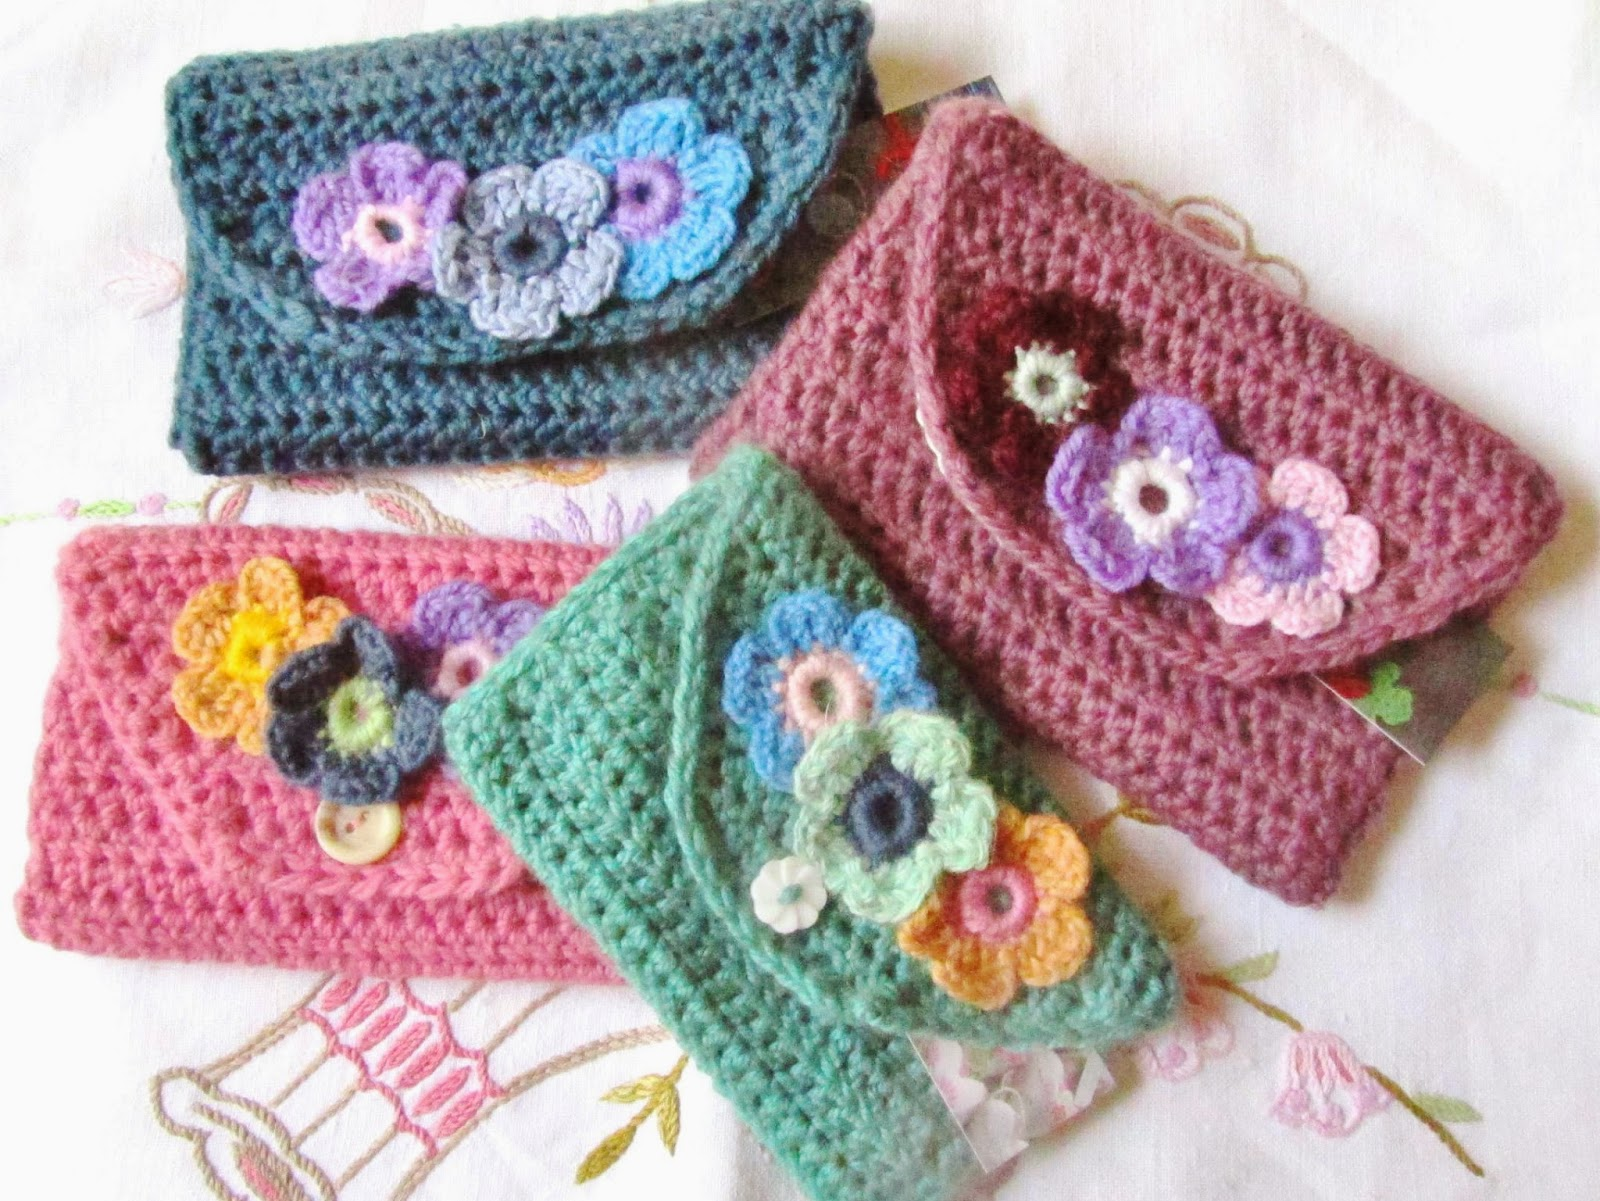 Free Crochet Patterns You Can Sell : Love Making Things: Cute & Easy Crochet